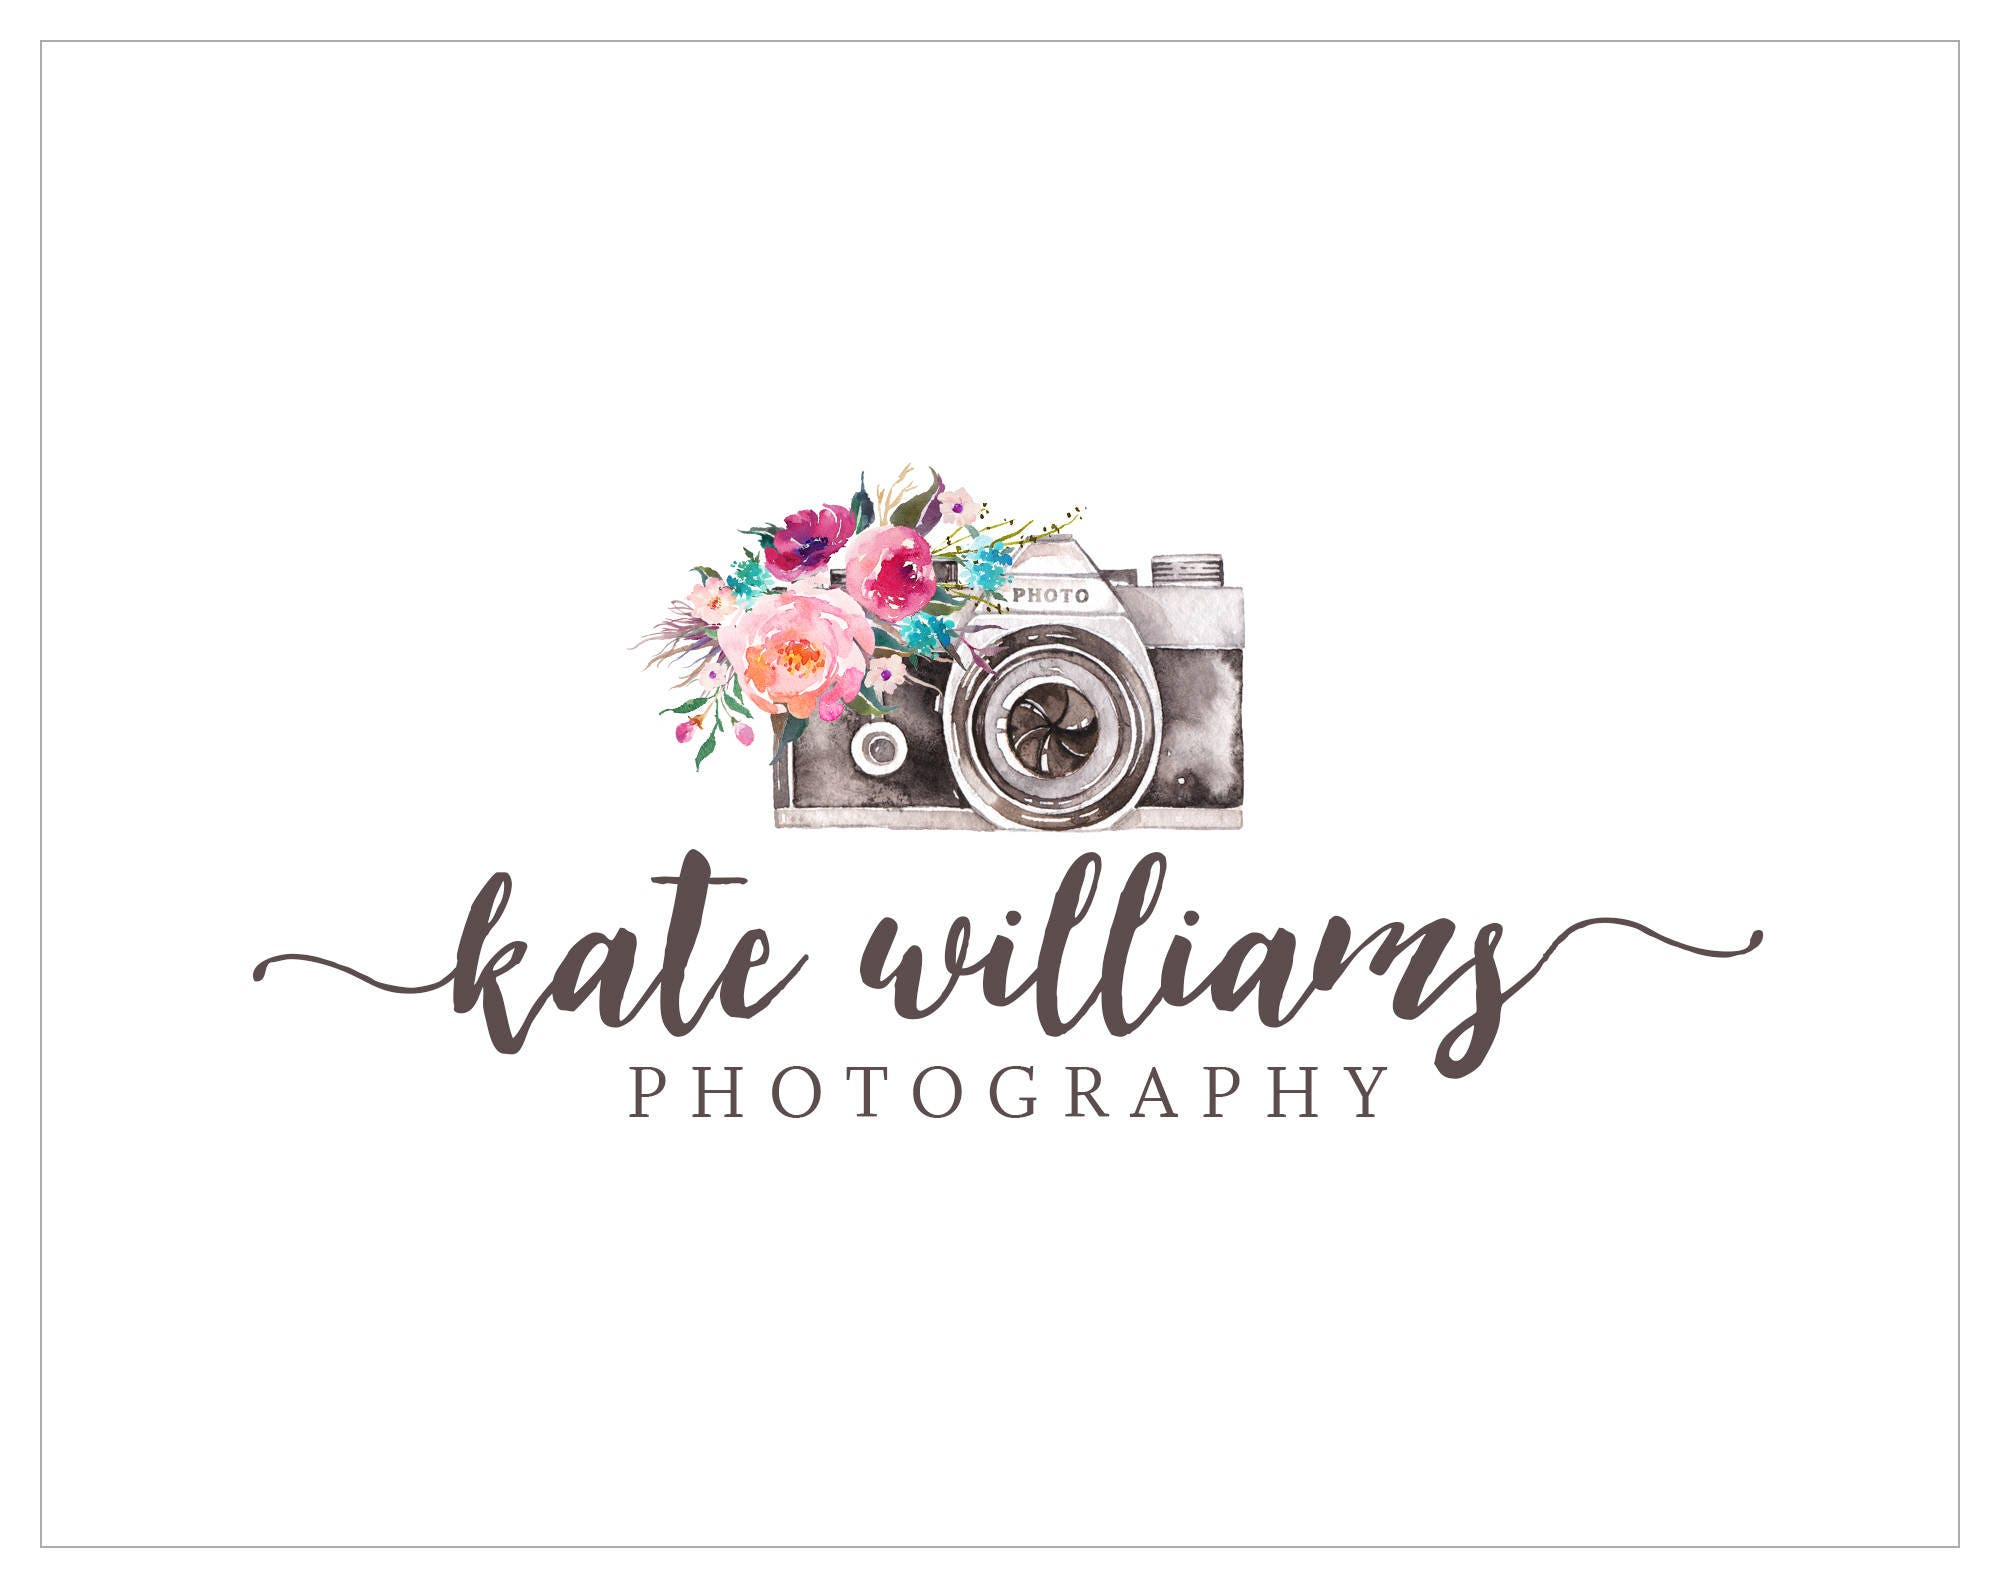 premade logo photography logo logo design photography